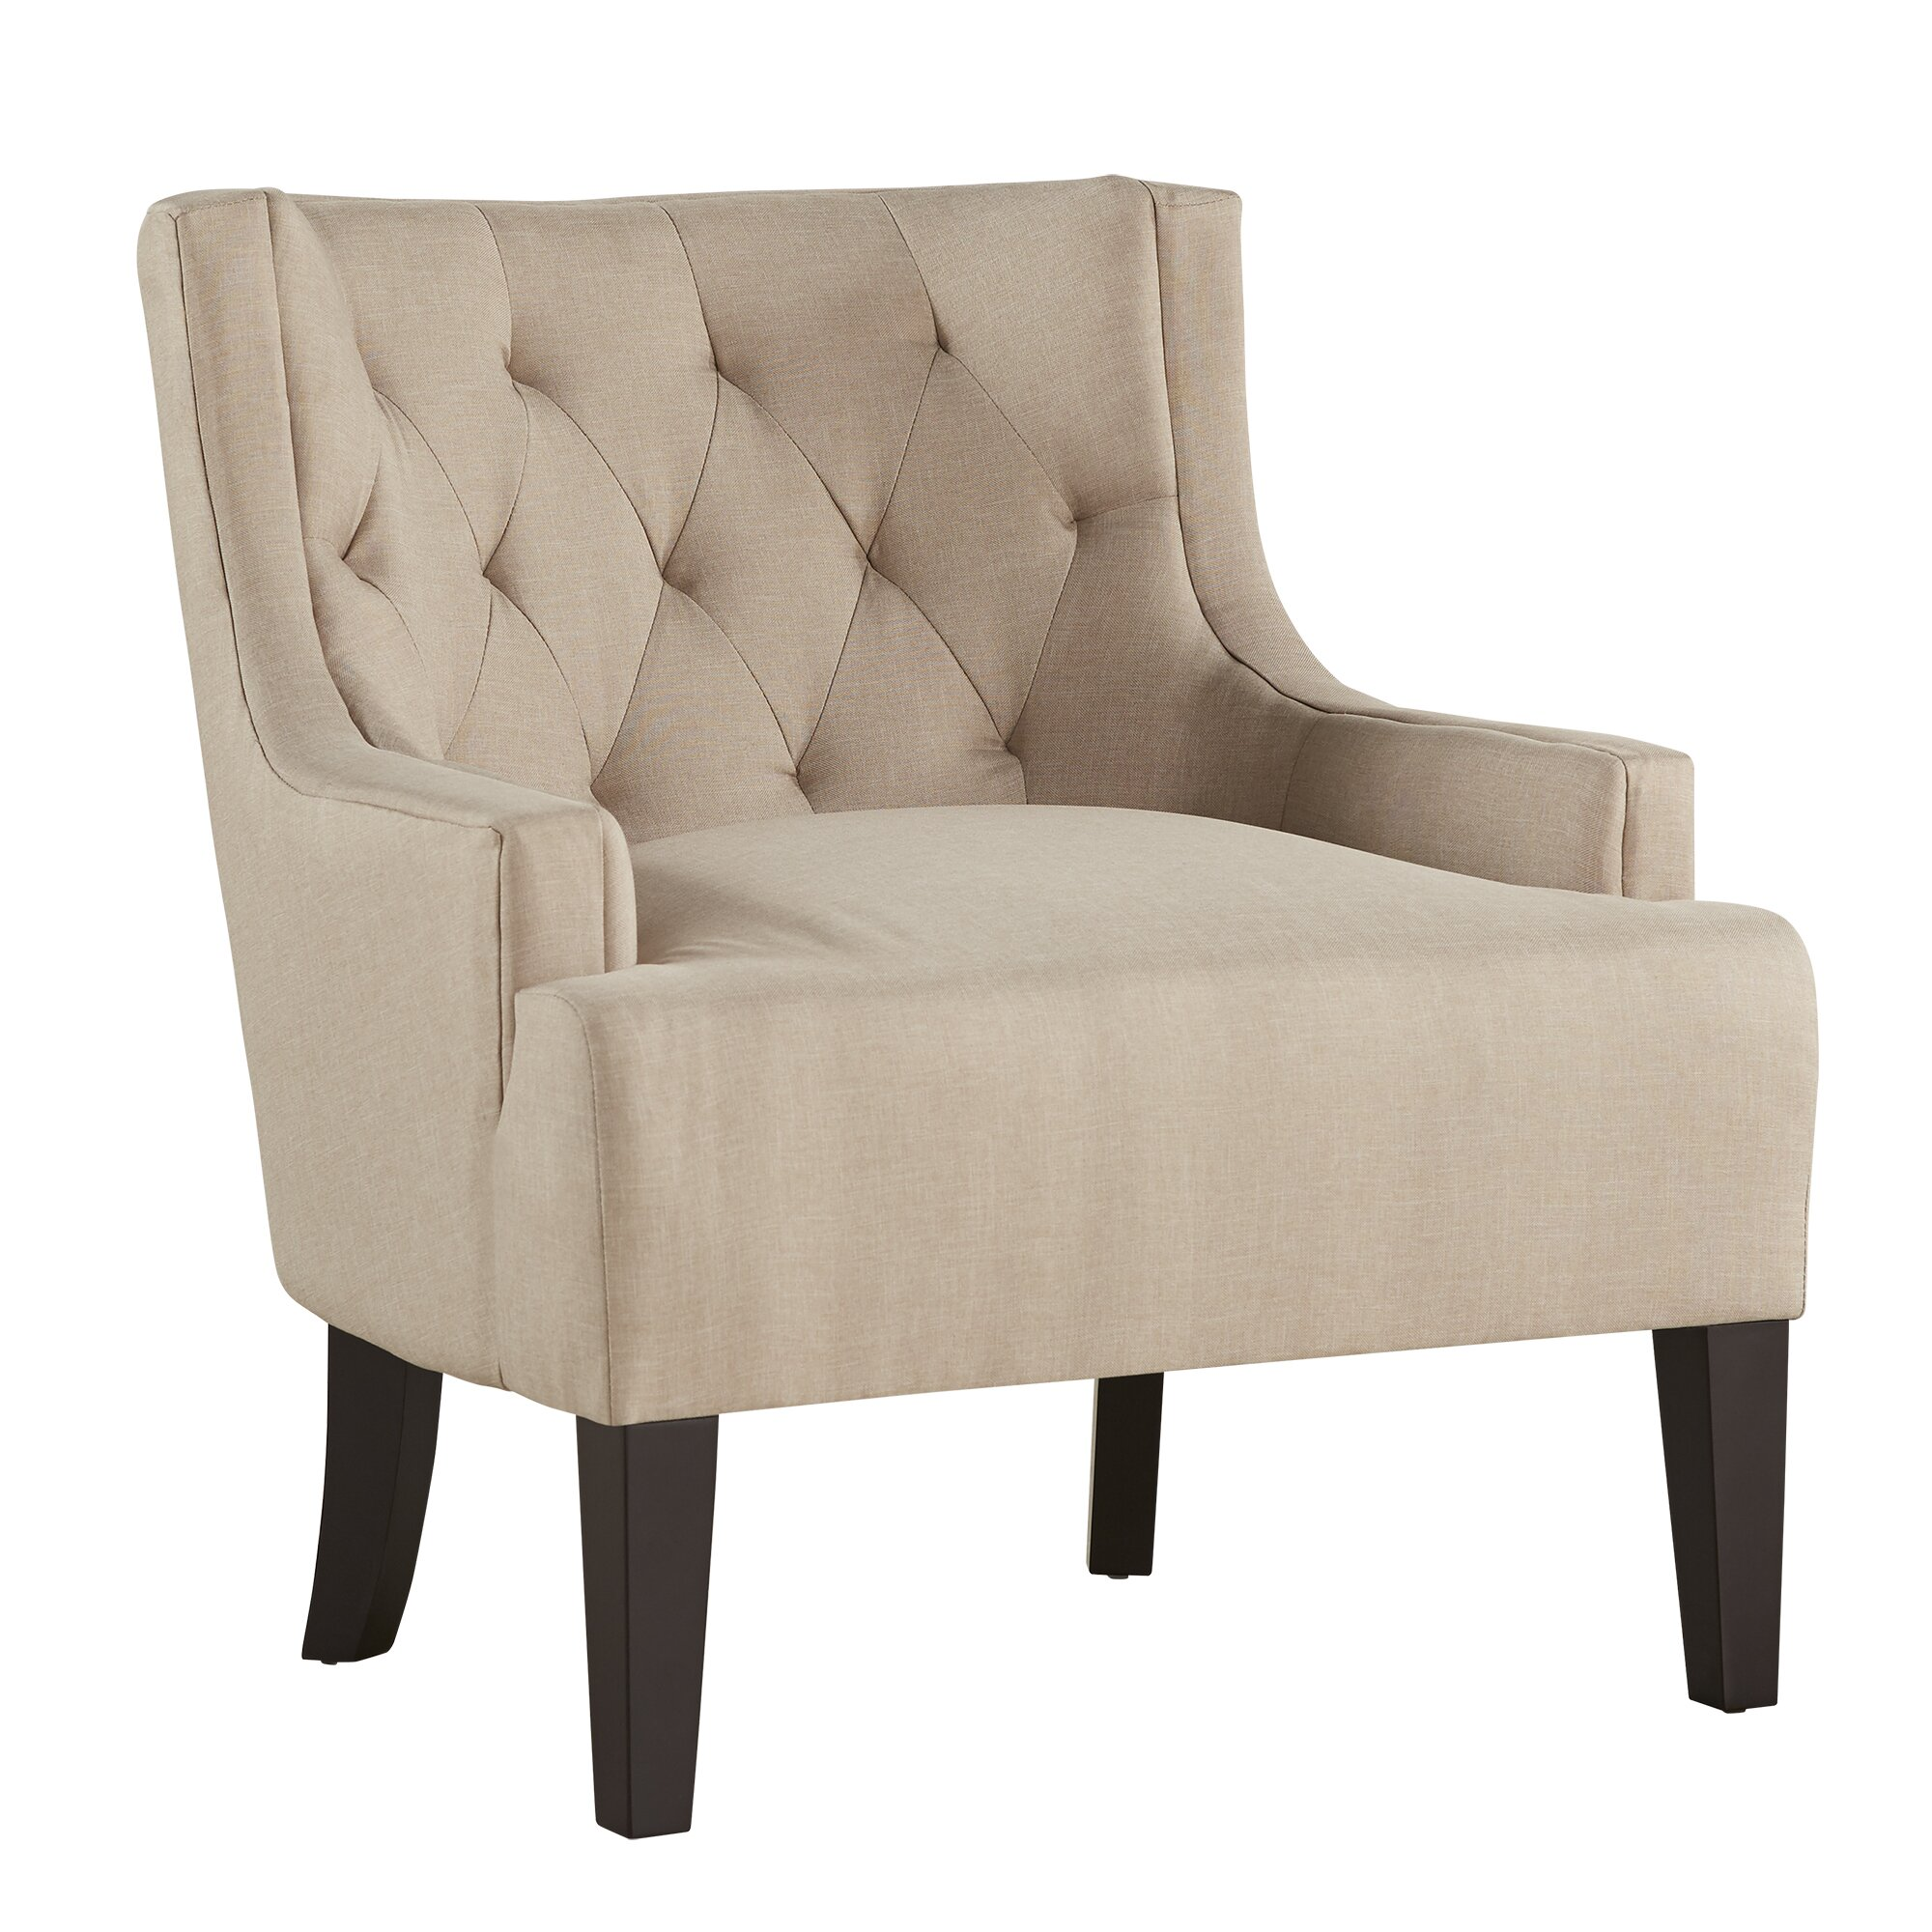 Kingstown home dawan tufted accent arm chair reviews Tufted accent chair